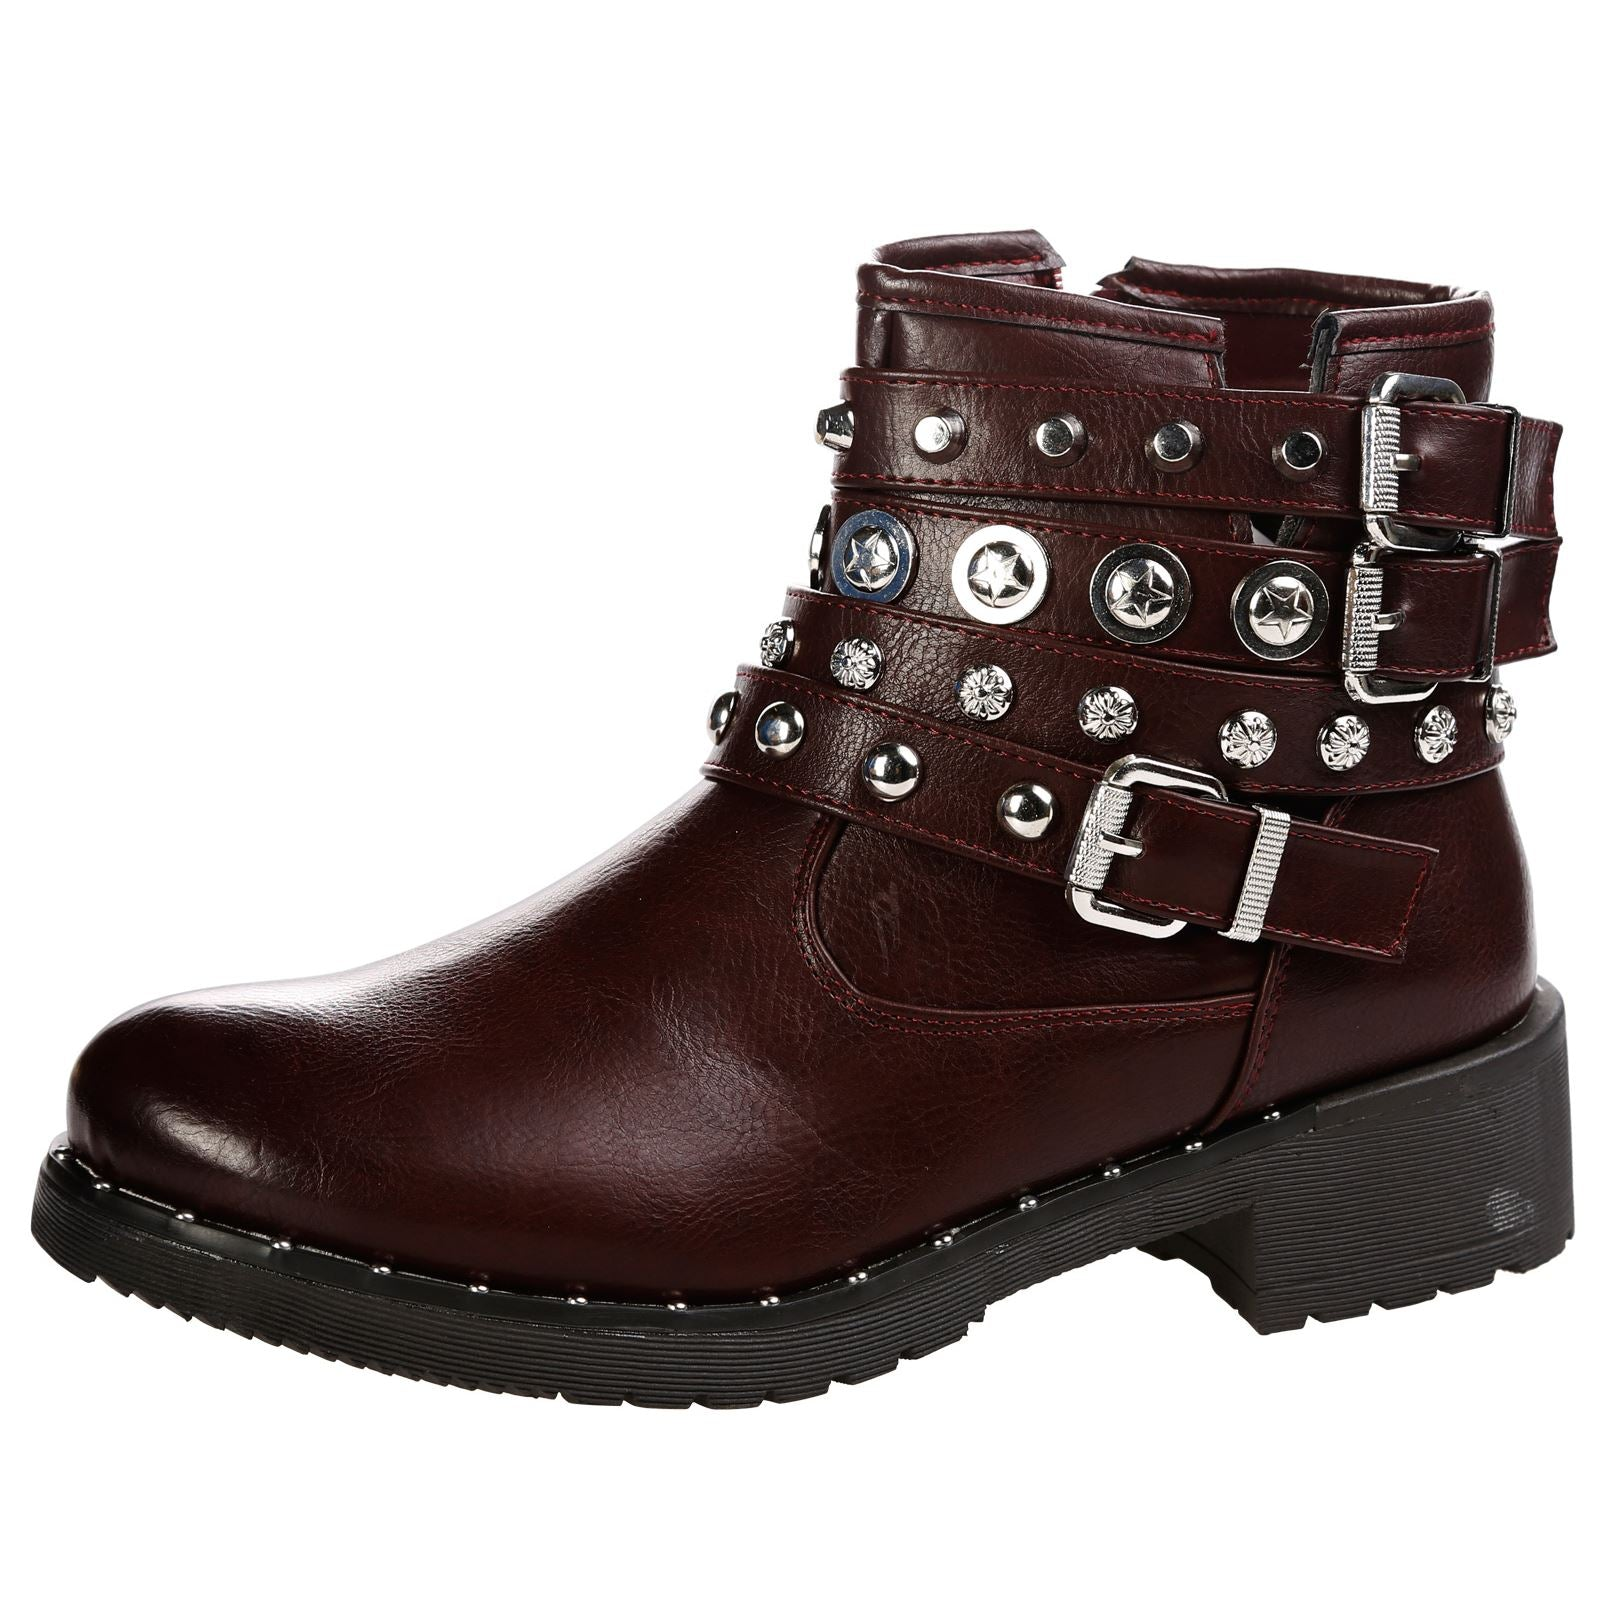 Lena Strappy Studded Biker Ankle Boots in Wine Red Faux Leather